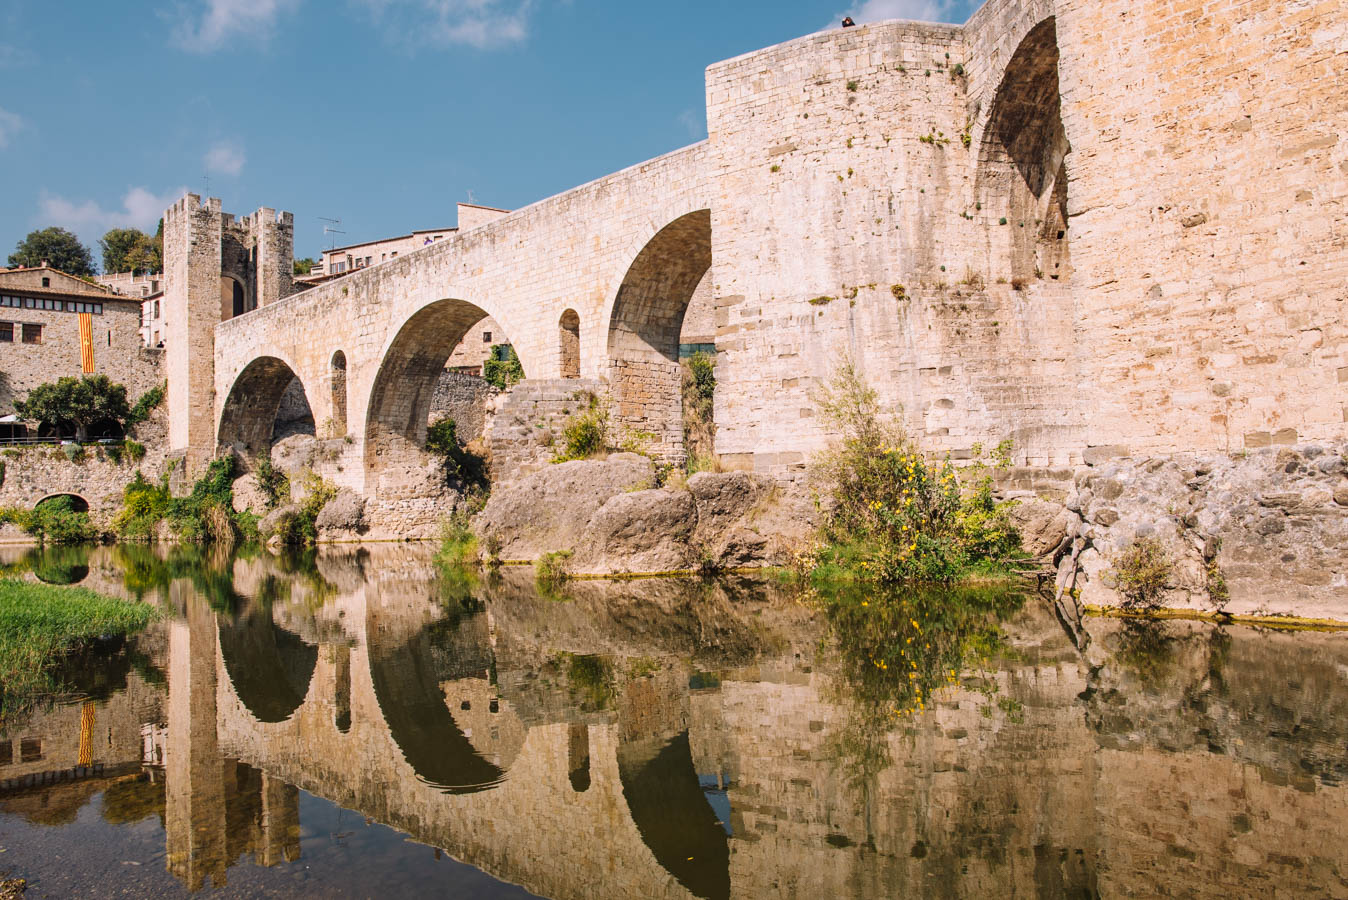 Besalu is perfect for a road trip from Barcelona